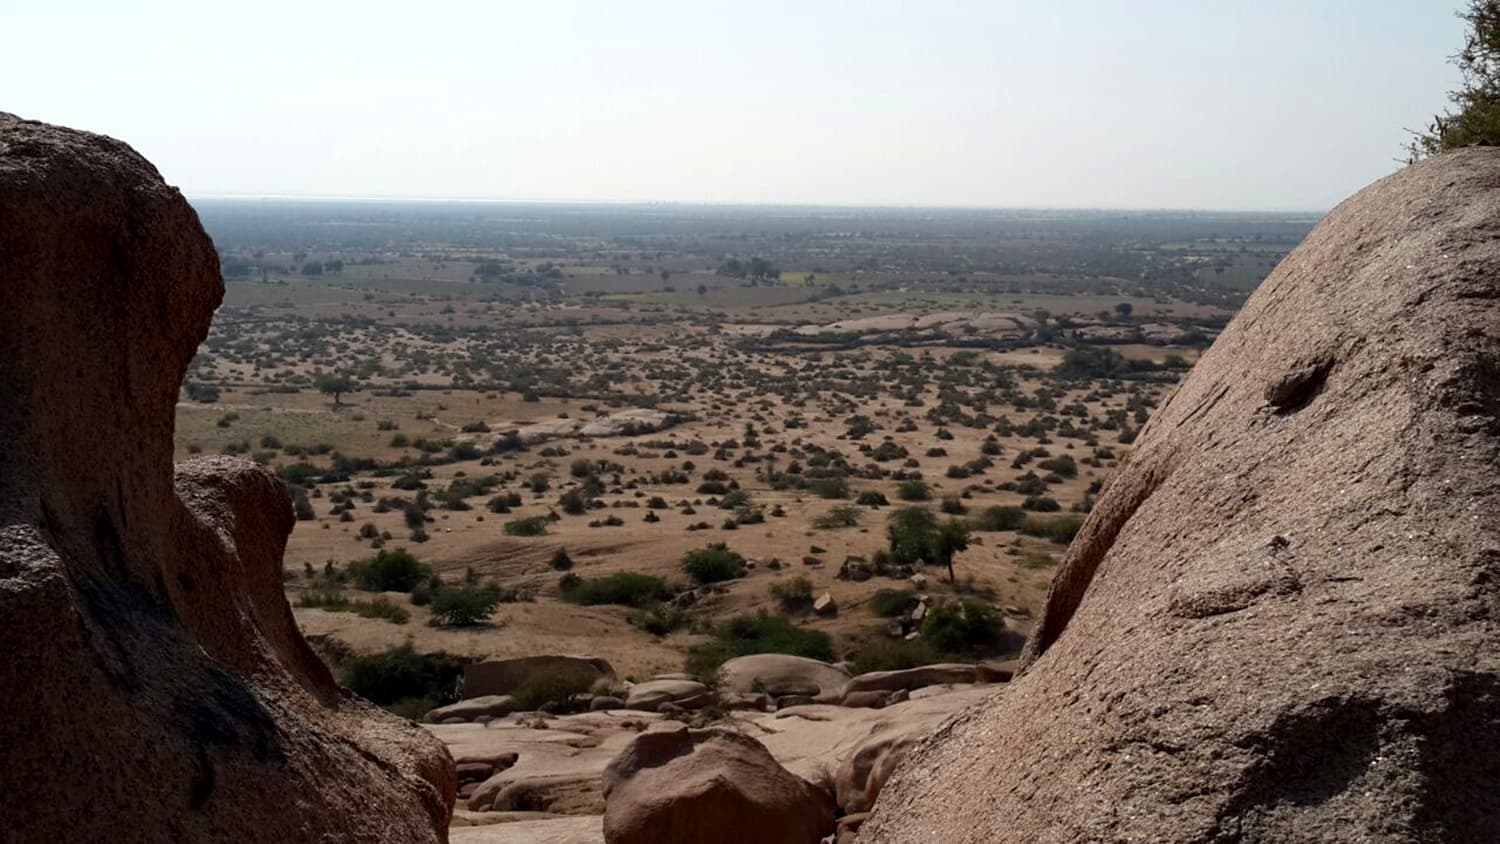 The arid and desolate landscape of Churio is in stark contrast to greenery which is seen after the rains.